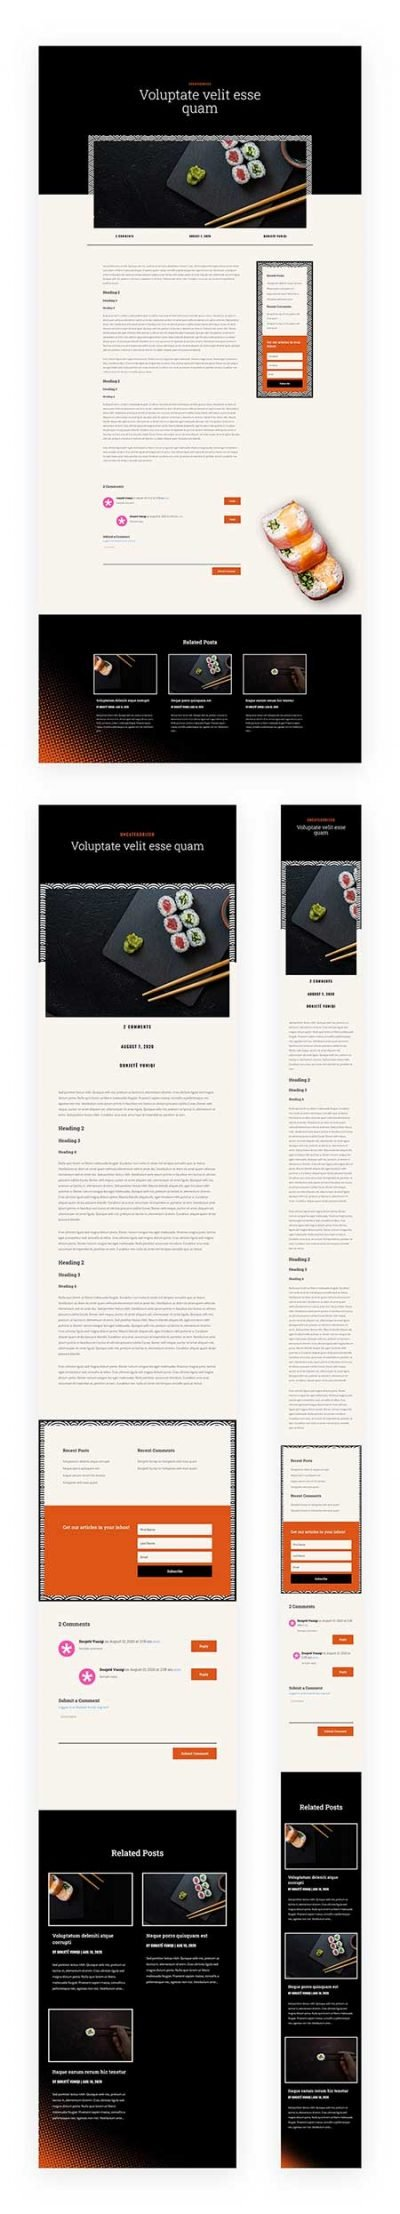 Divi sushu shop blog post template